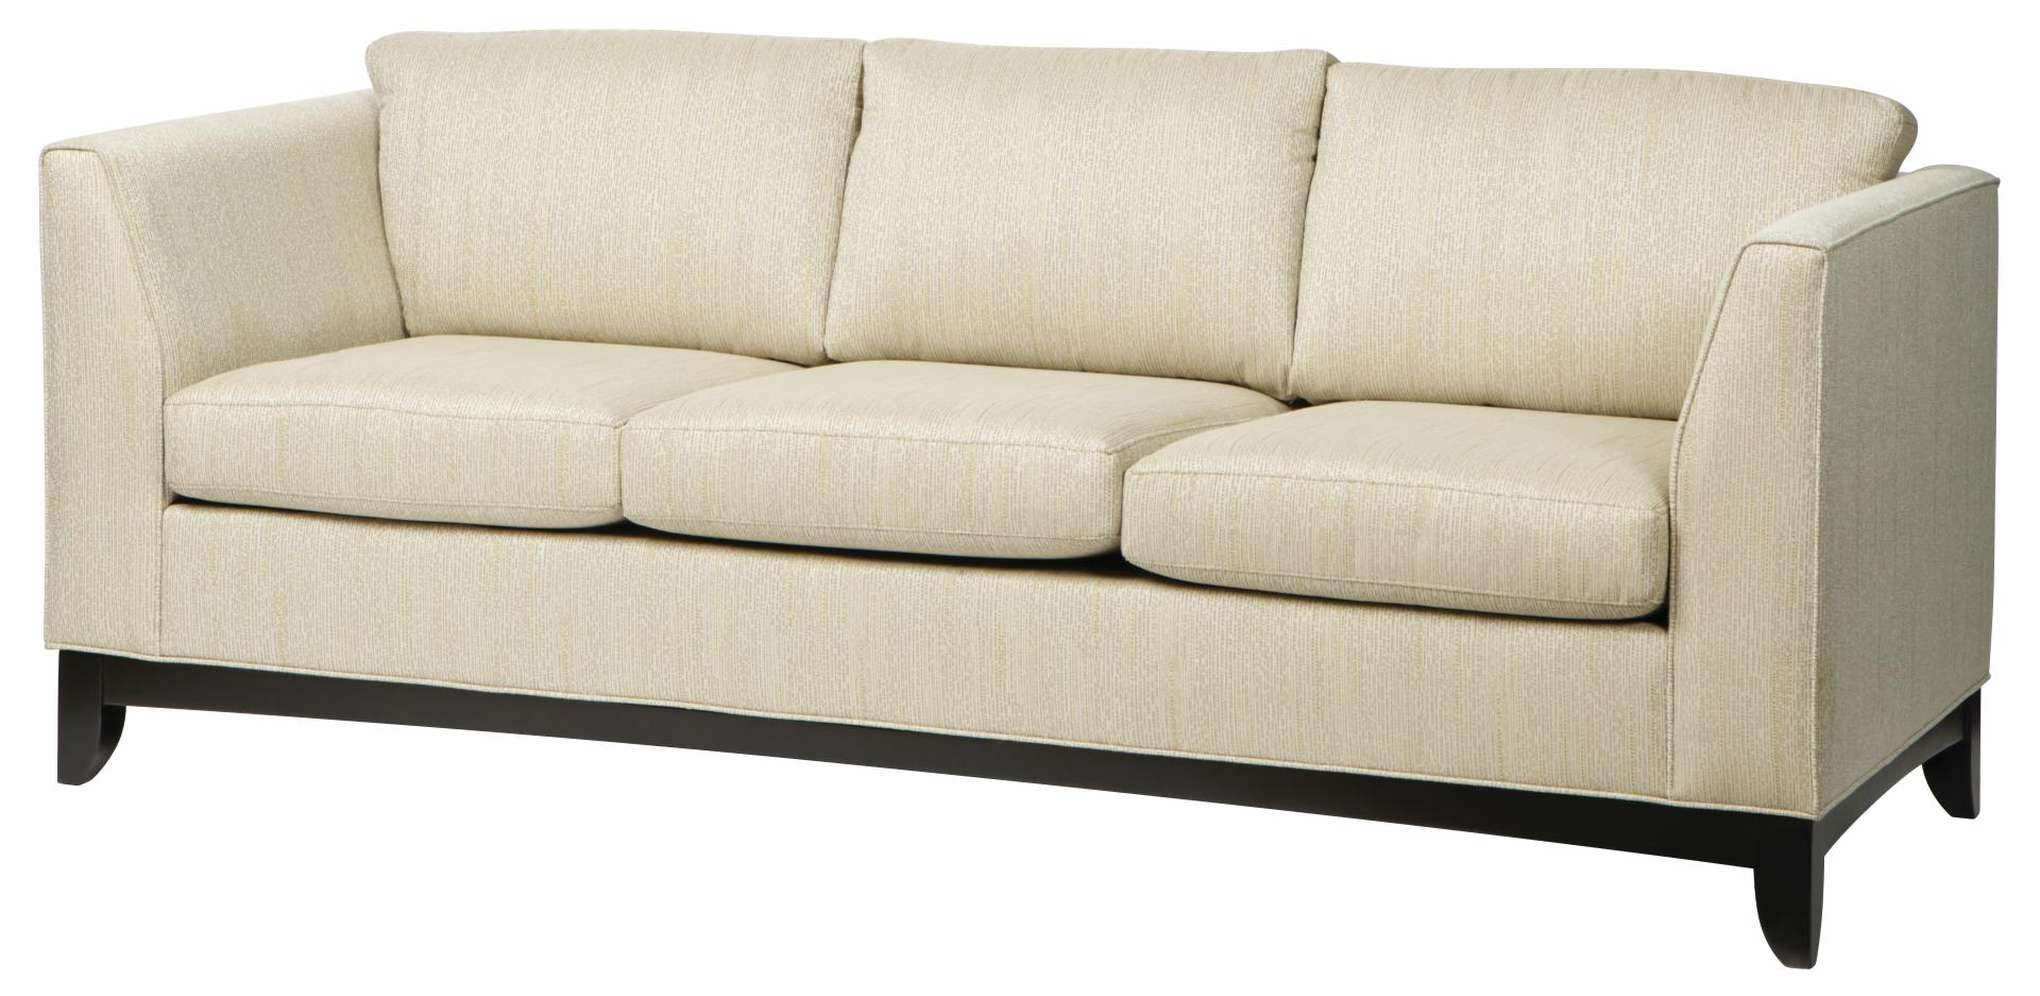 Brilliant Napoli Sofa Maxwell Thomas Unemploymentrelief Wooden Chair Designs For Living Room Unemploymentrelieforg